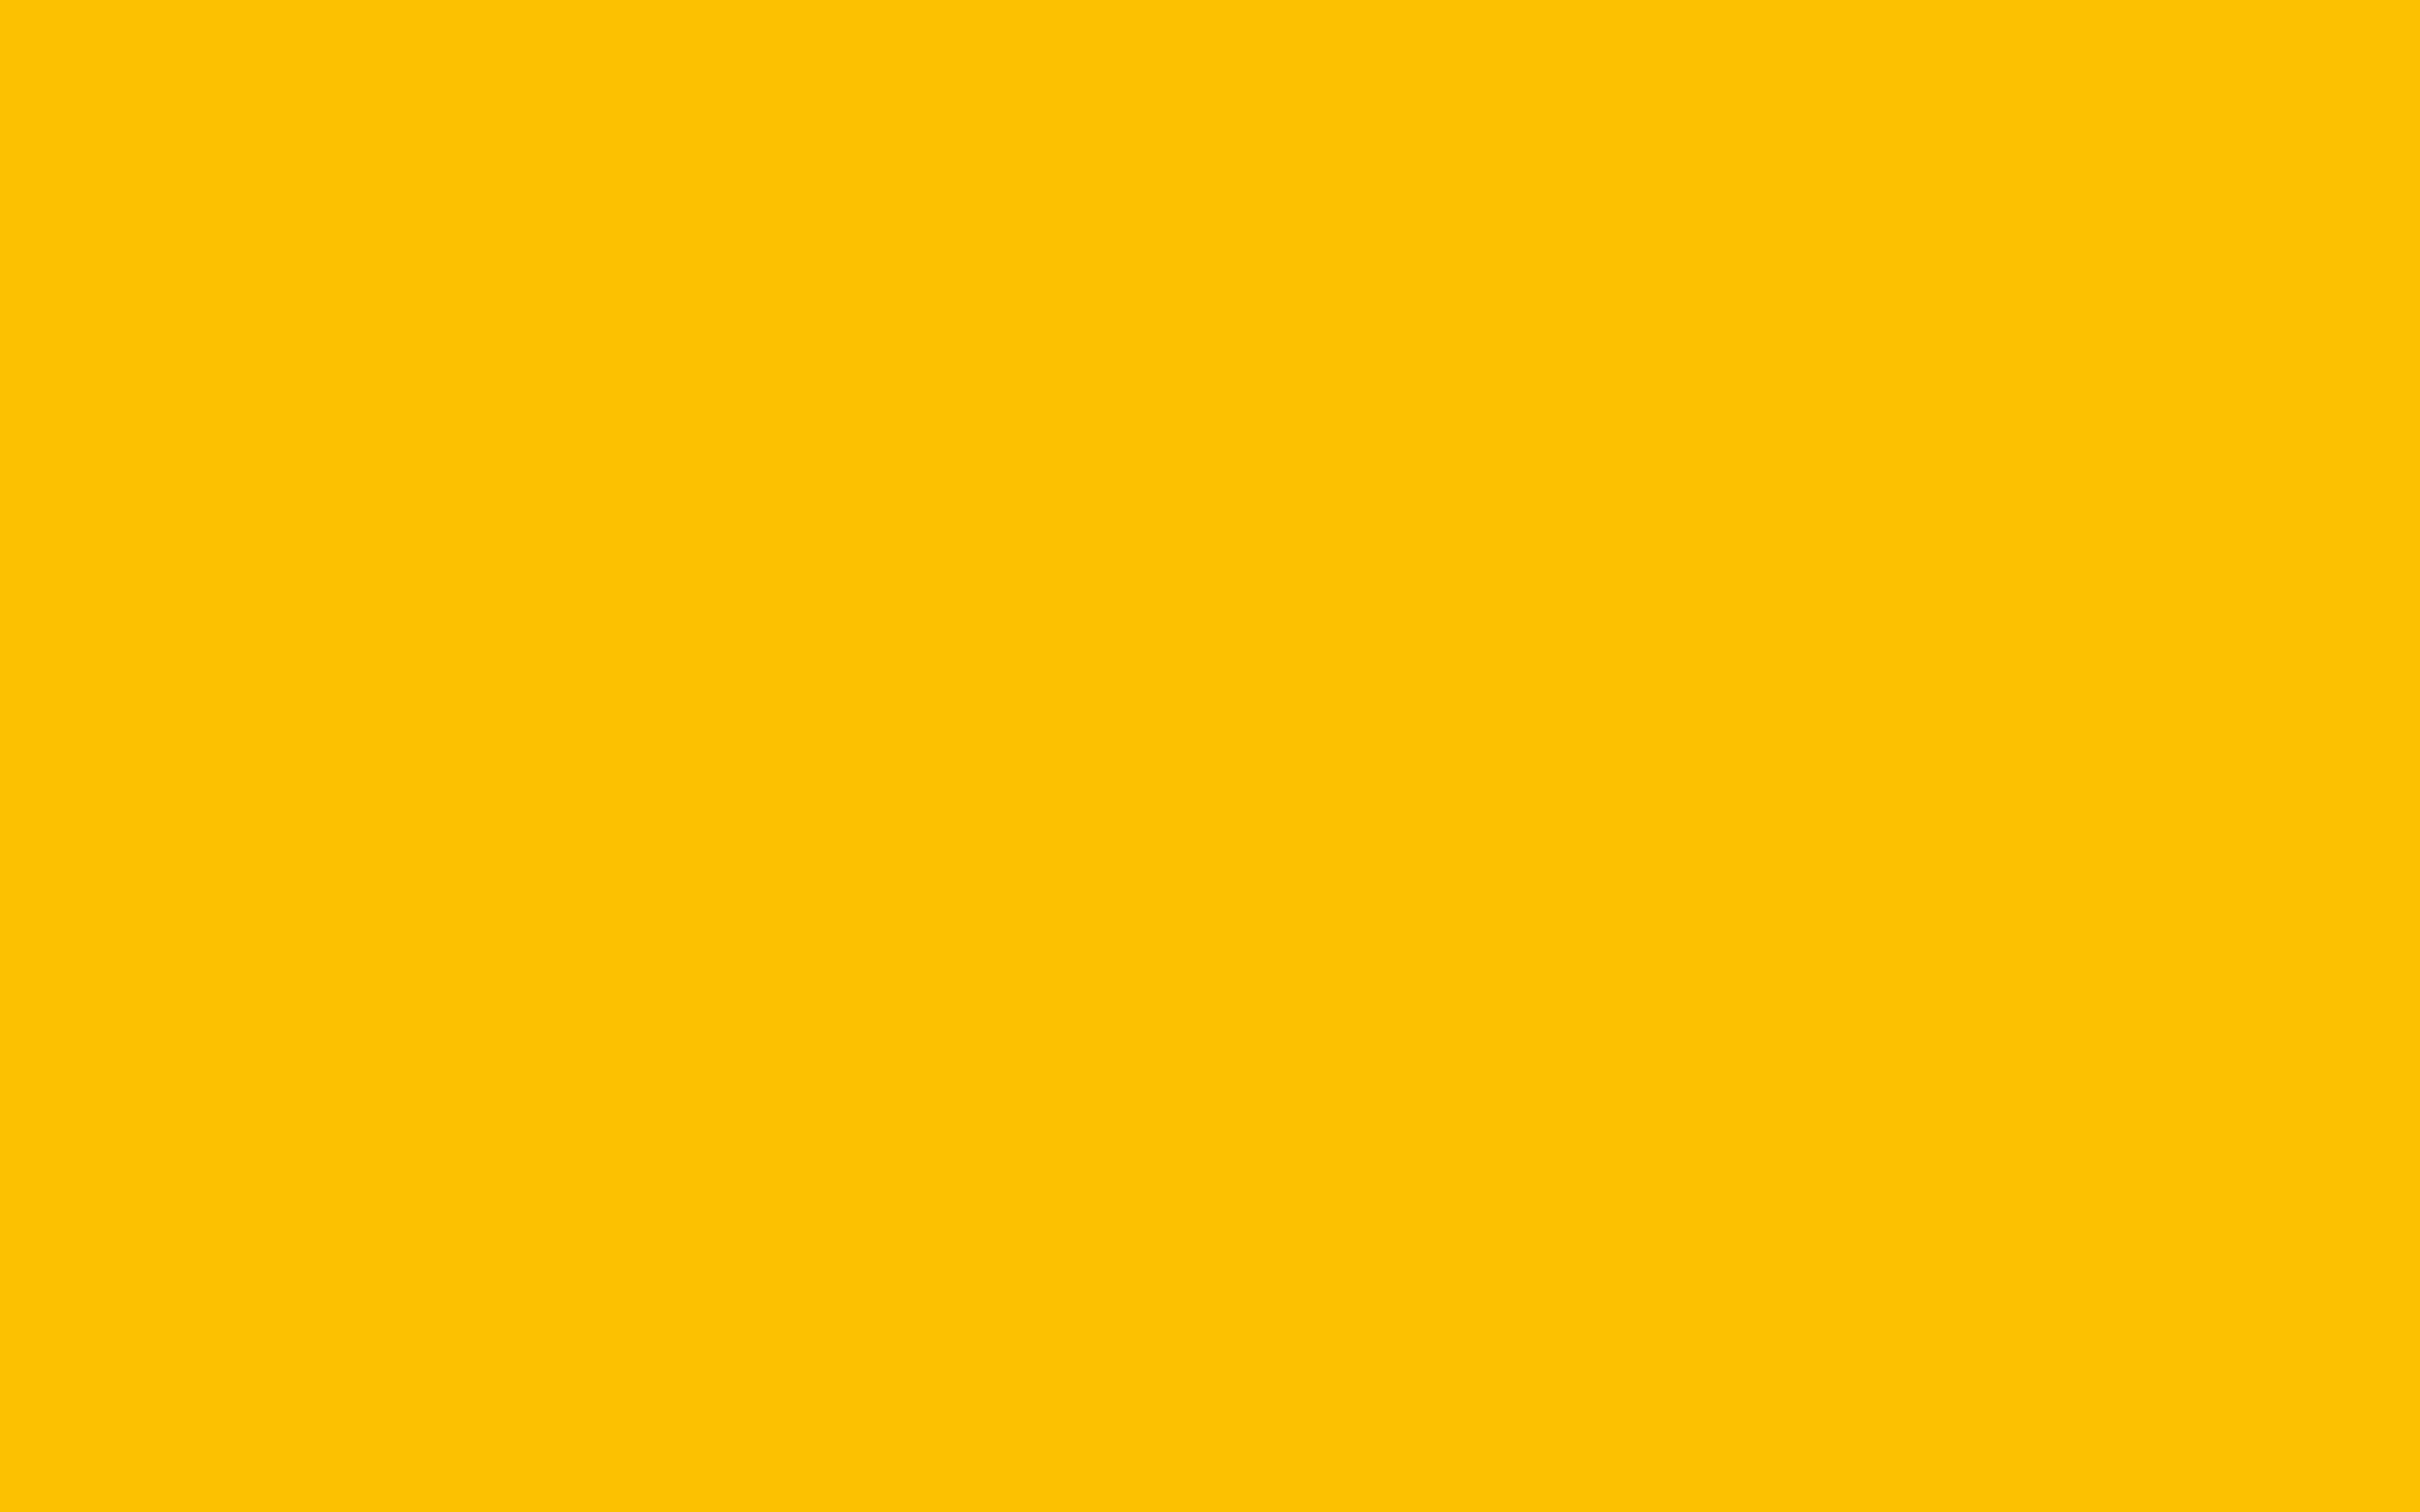 2880x1800 Golden Poppy Solid Color Background